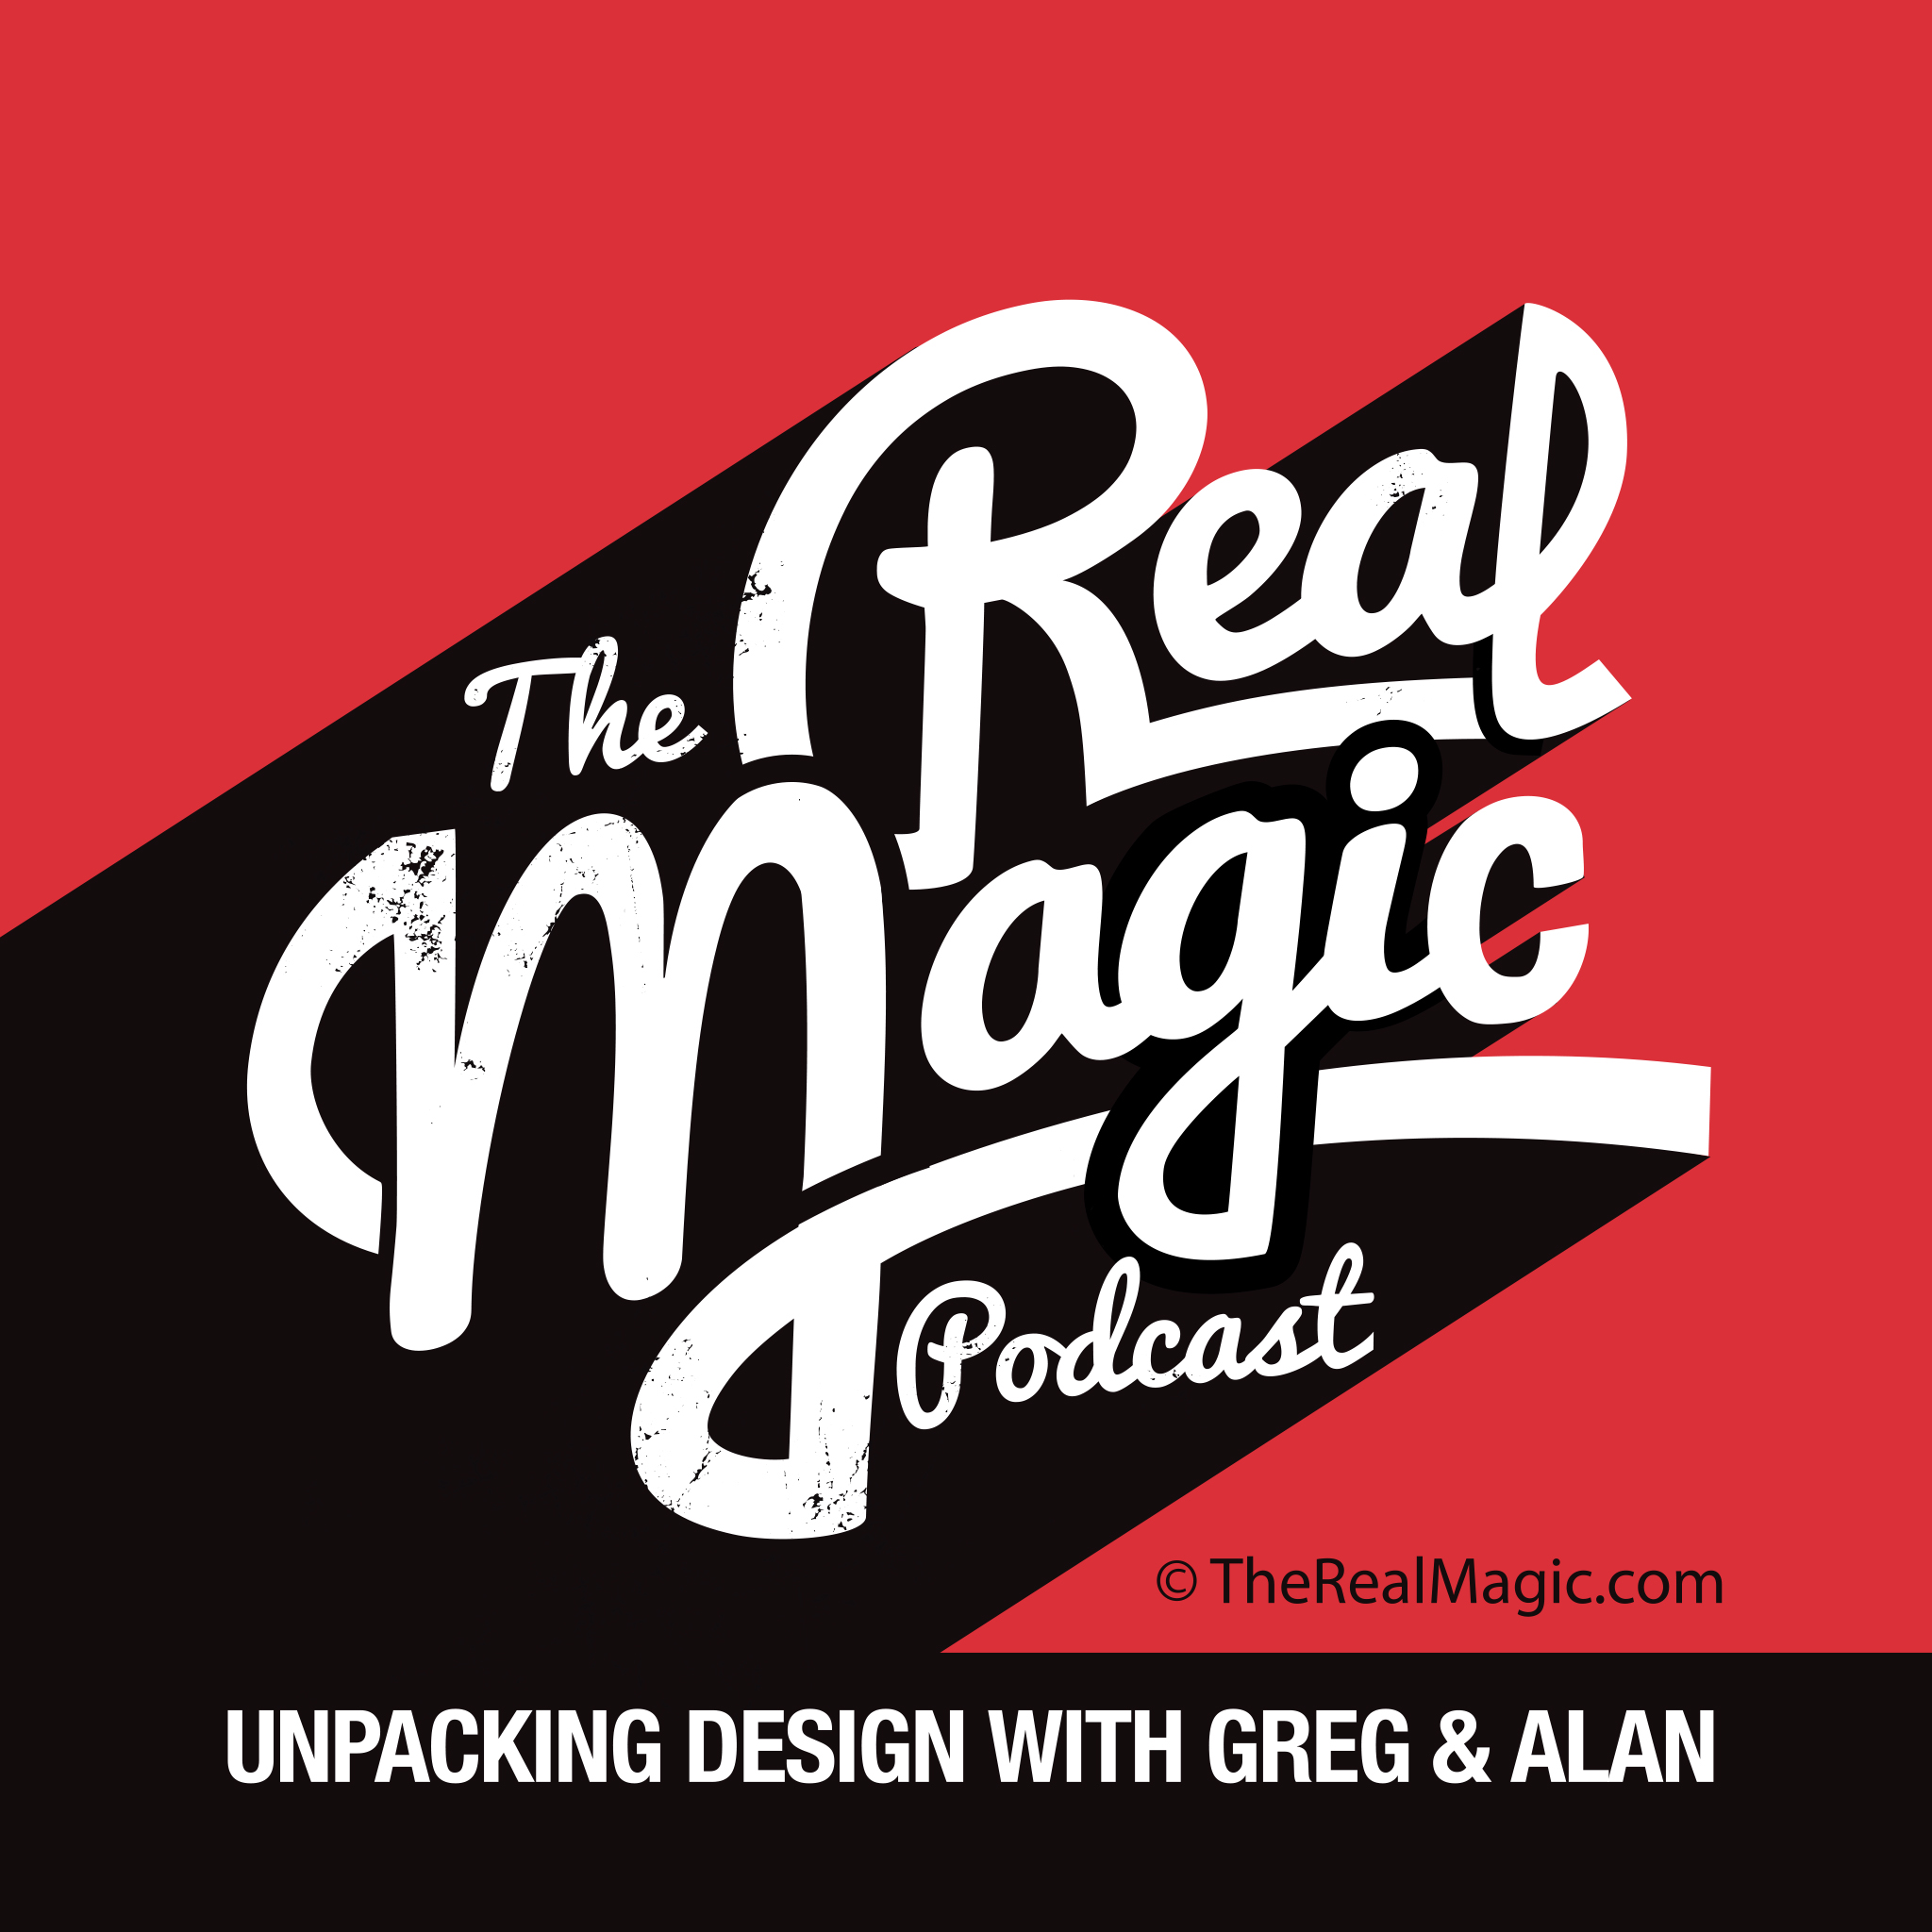 The Real Magic Podcast - Unpacking Design with Greg & Alan